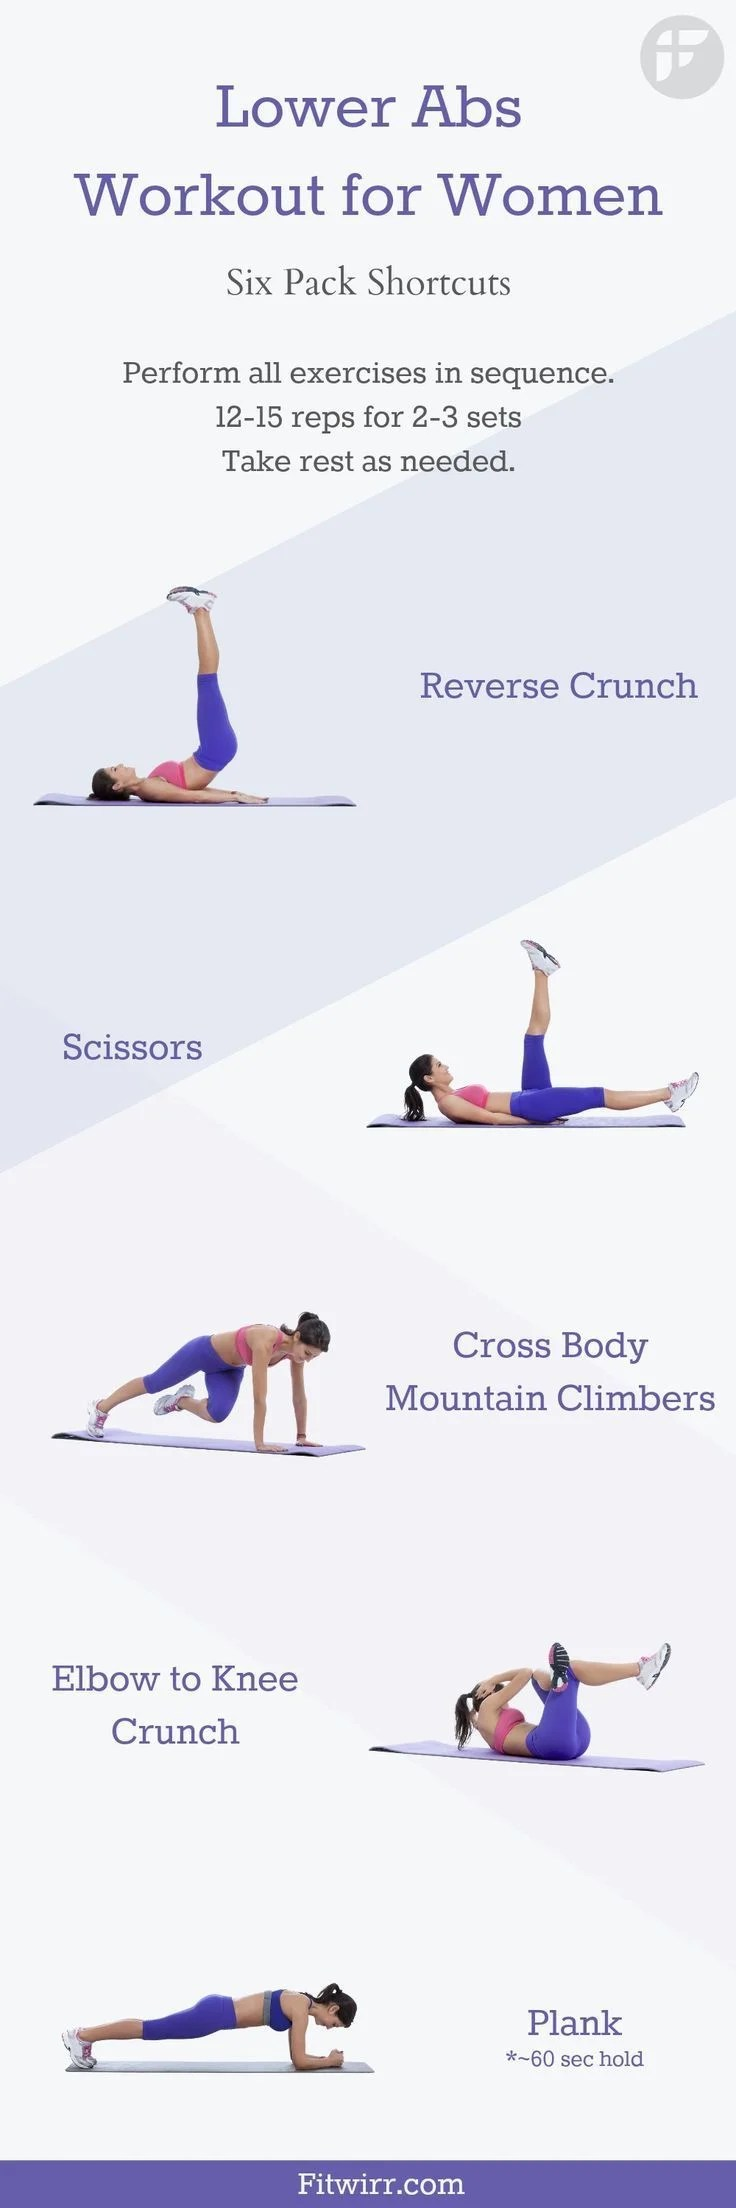 Lower Ab Workout - 6 Best Exercises for Your Lower Abs ...